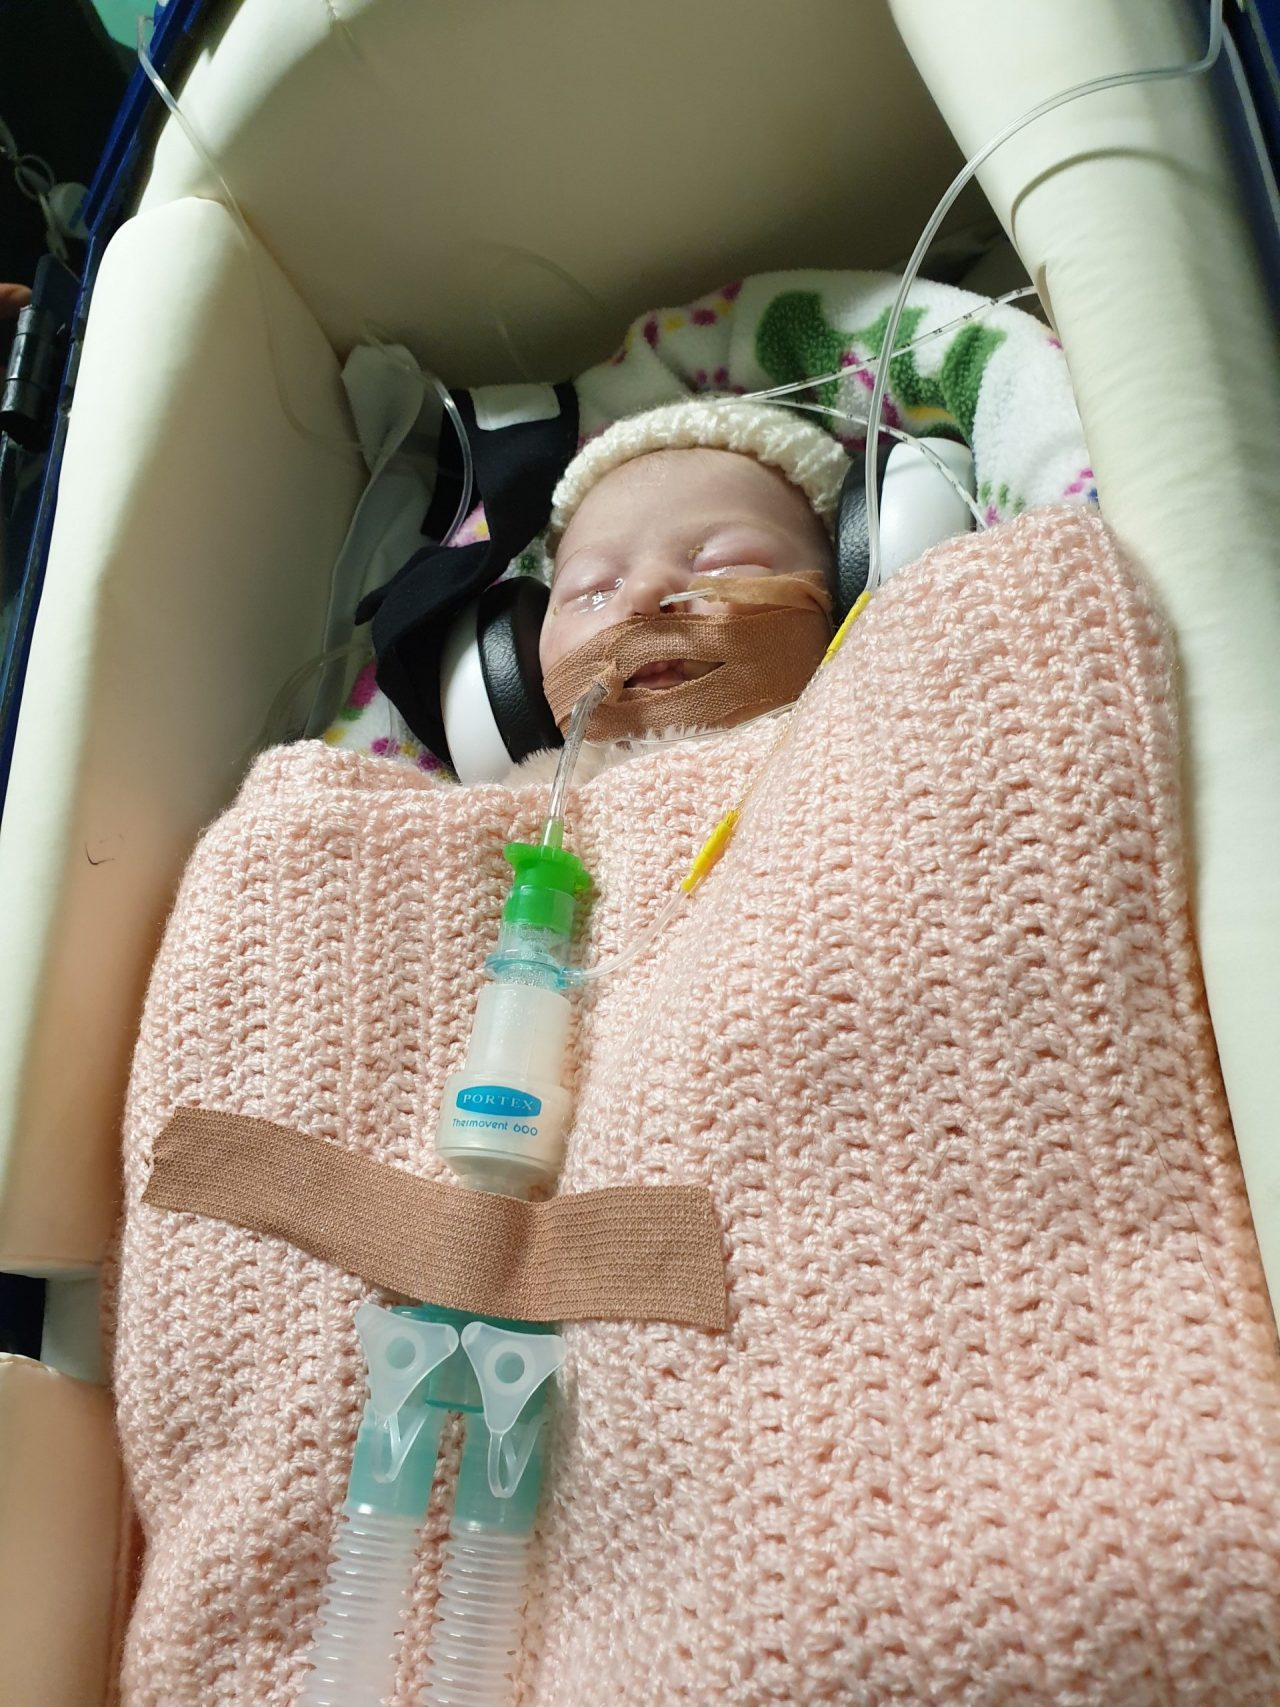 Hasting toddler's air transfer to London hospital featured in national charity campaign